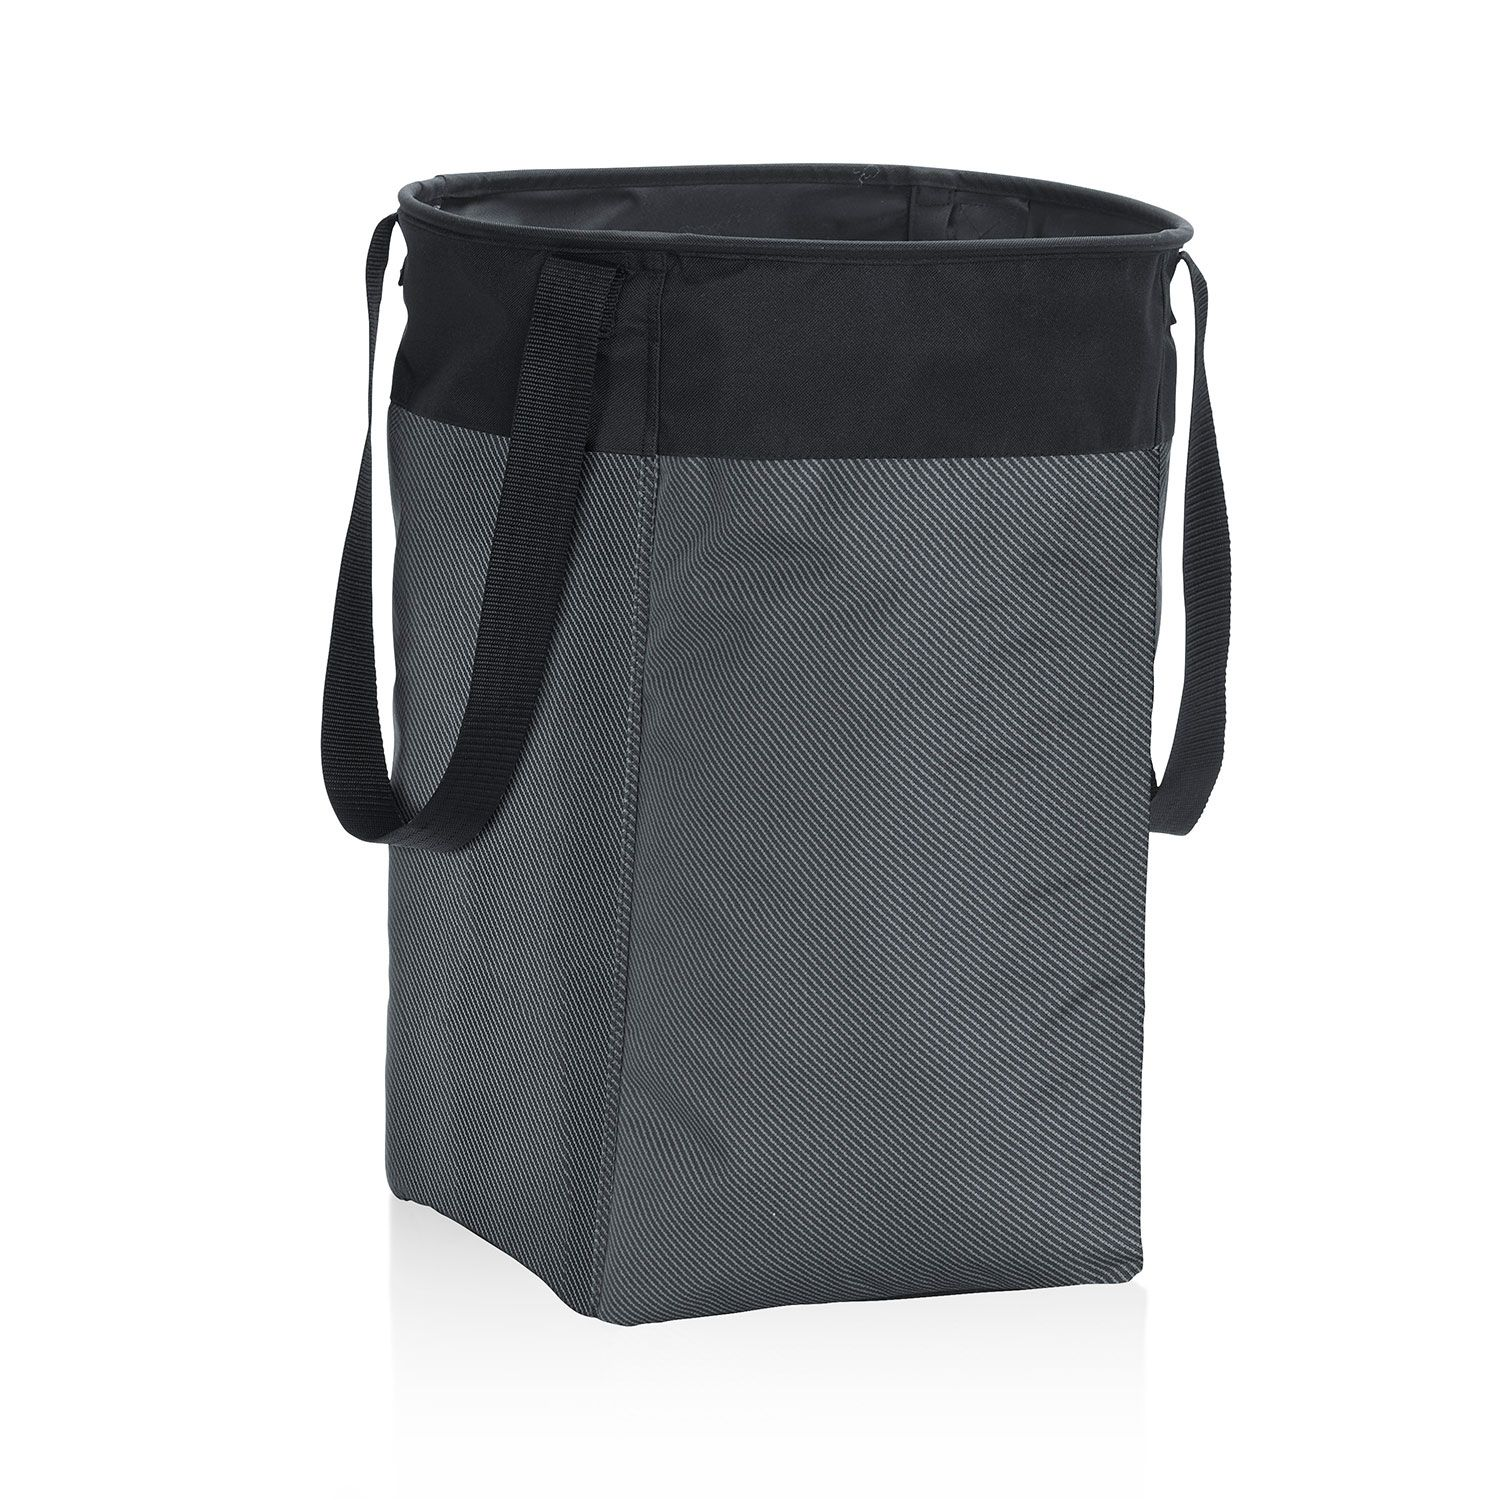 Stand Tall Bin In Black Twill Stripe For 50 Perfect For